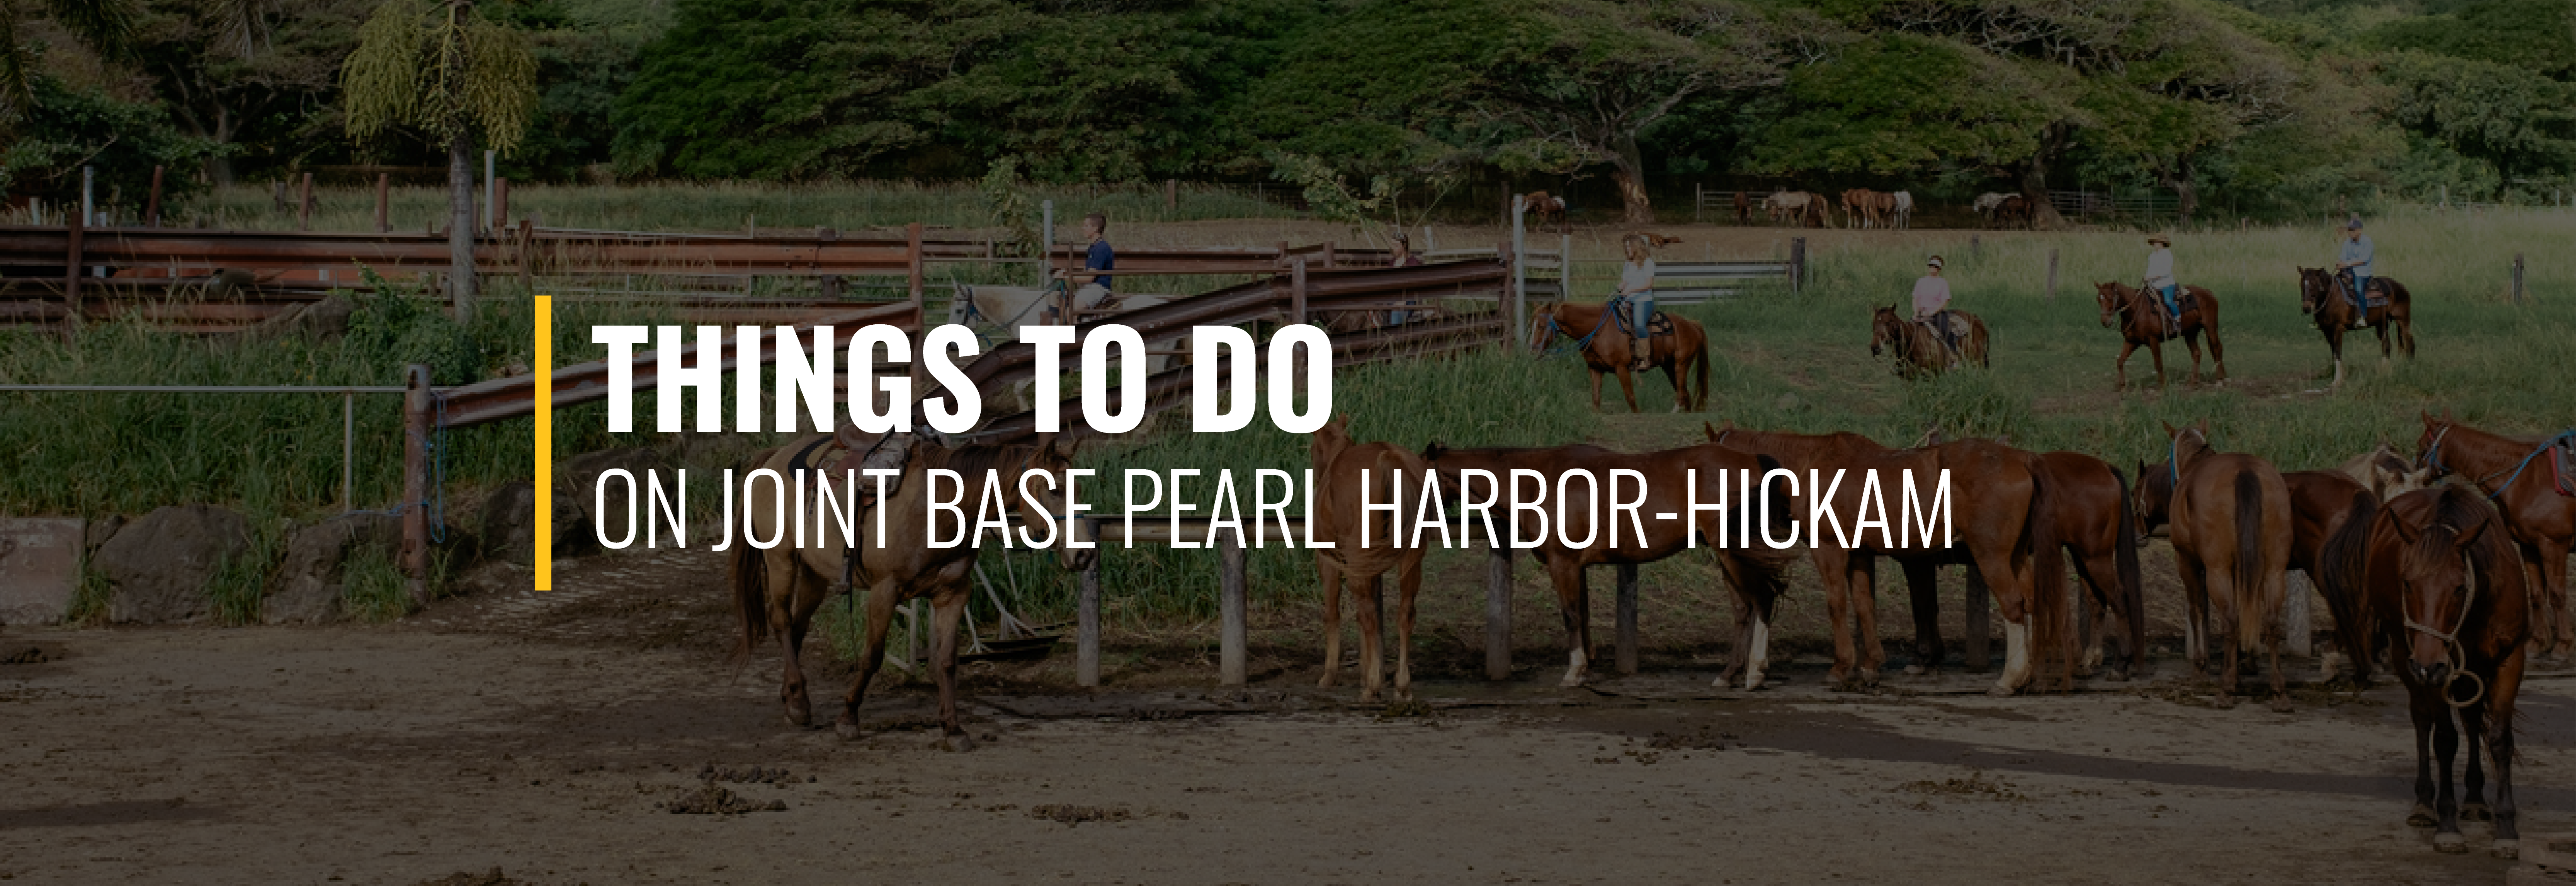 Things to Do on Joint Base Pearl Harbor-Hickam